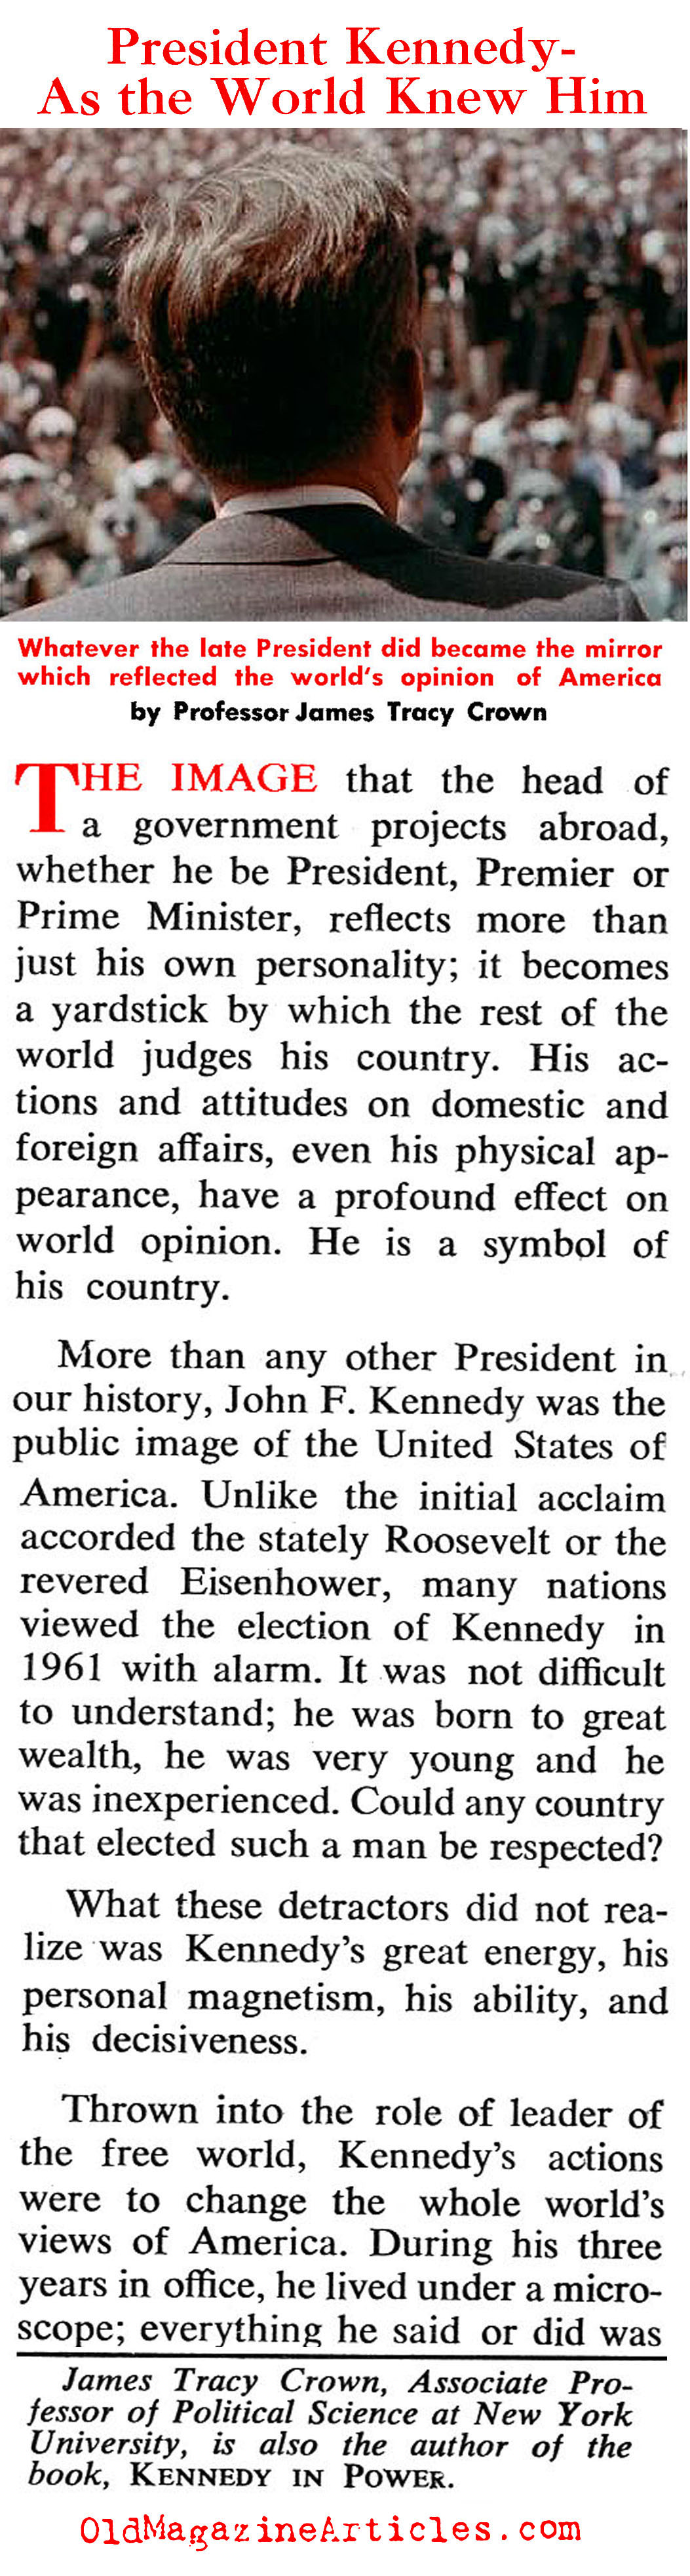 JFK - As the World Saw Him (Coronet Magazine, 1964)